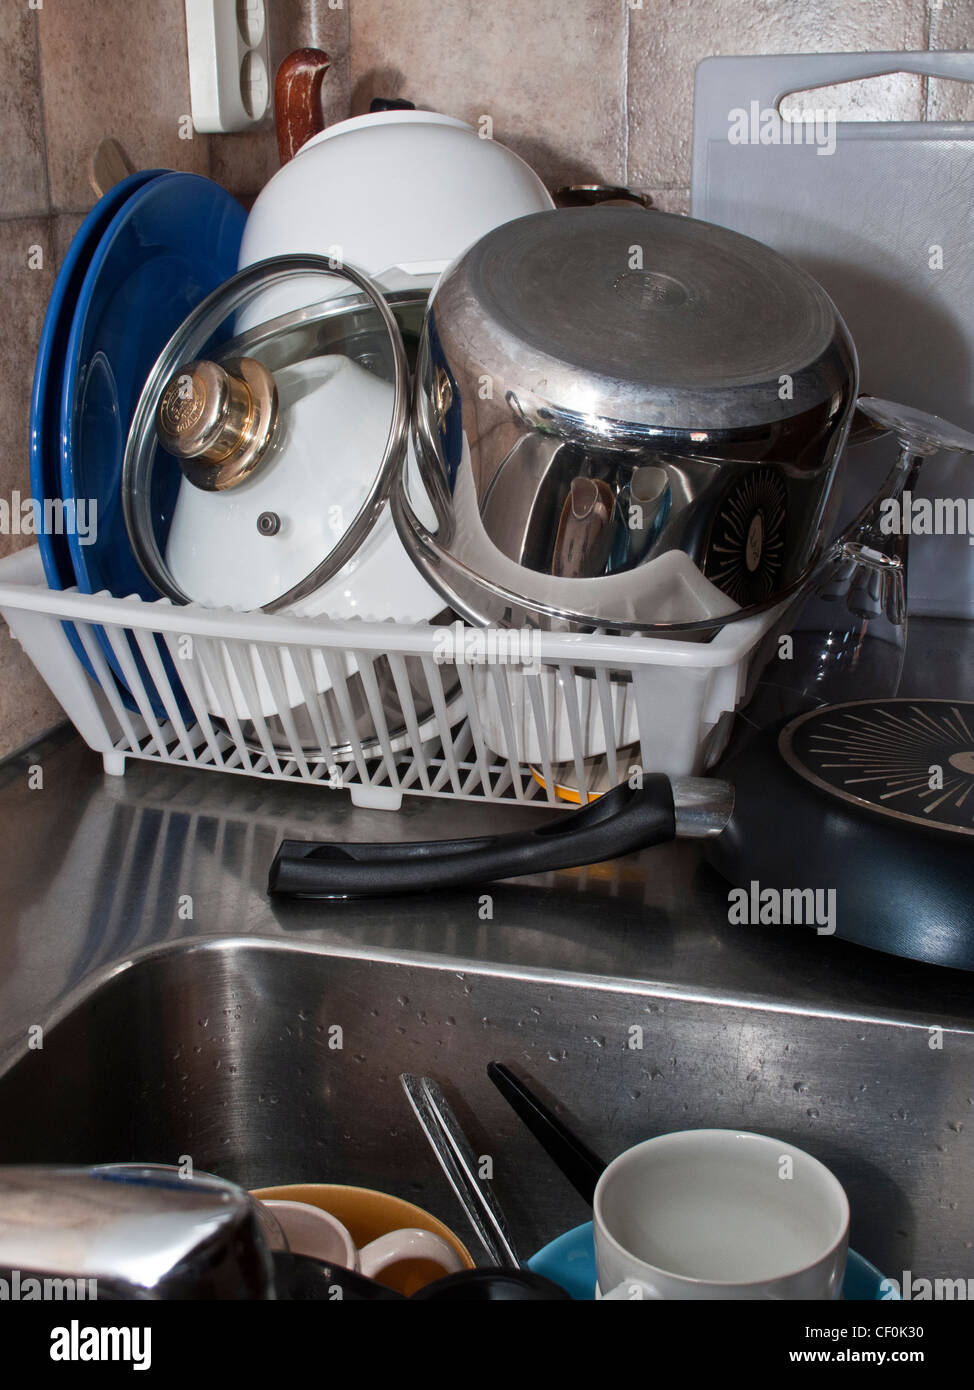 Plastic kitchen drain dish rack full with untidy dishes and utensils. Messy - Stock Image